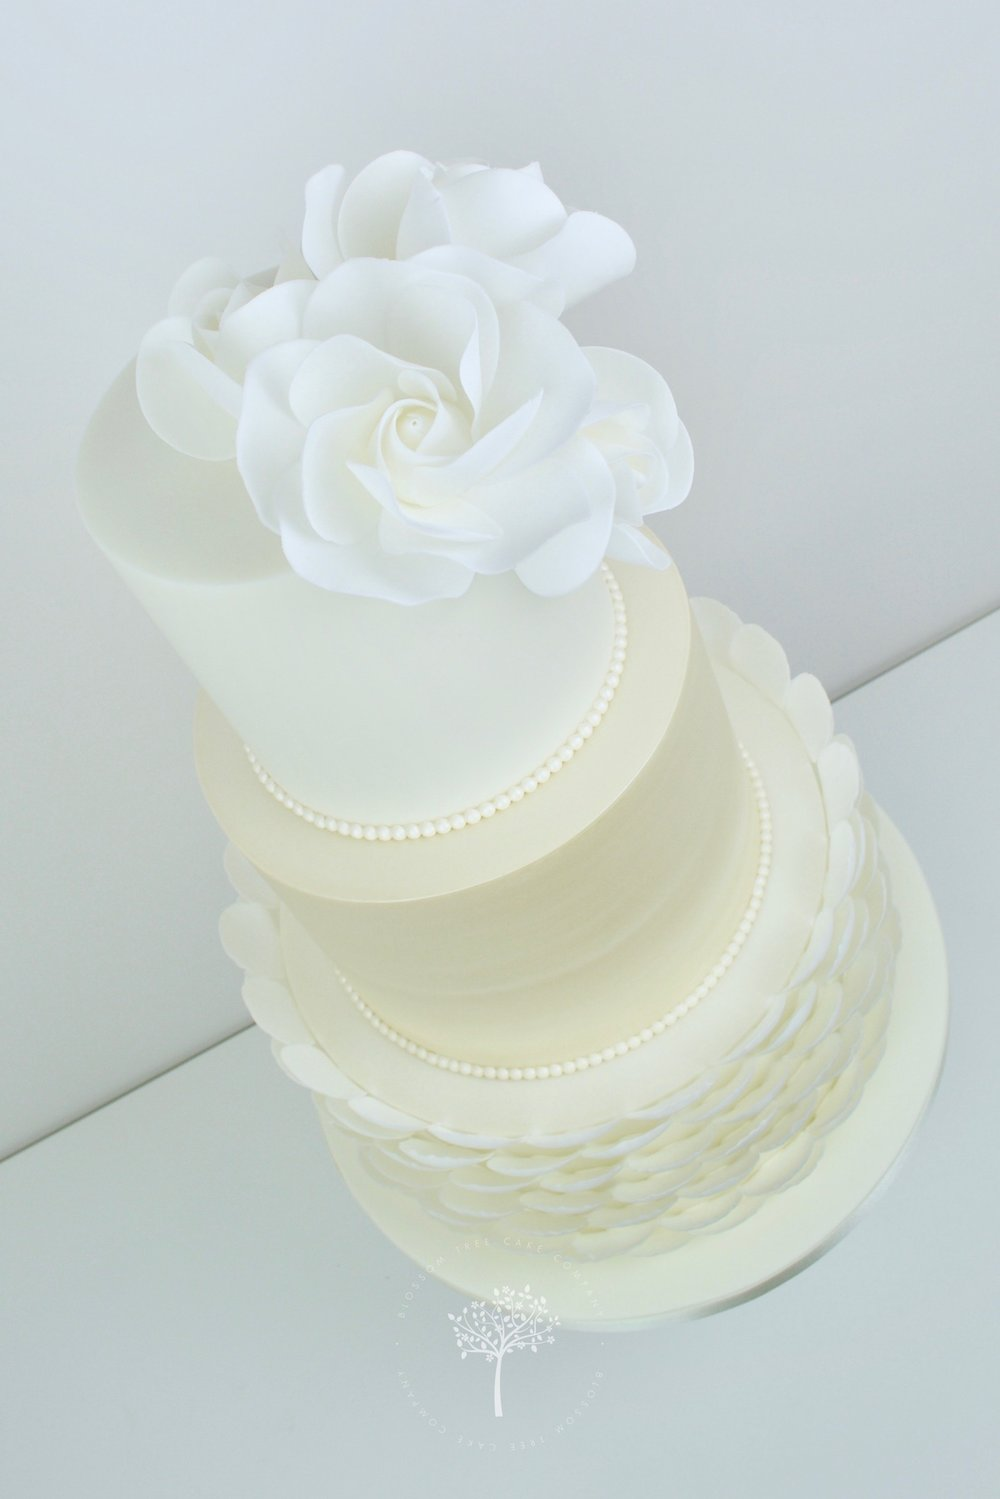 White Roses with Pearls wedding cake by Blossom Tree Cake Company Harrogate North Yorkshire - angle.jpg